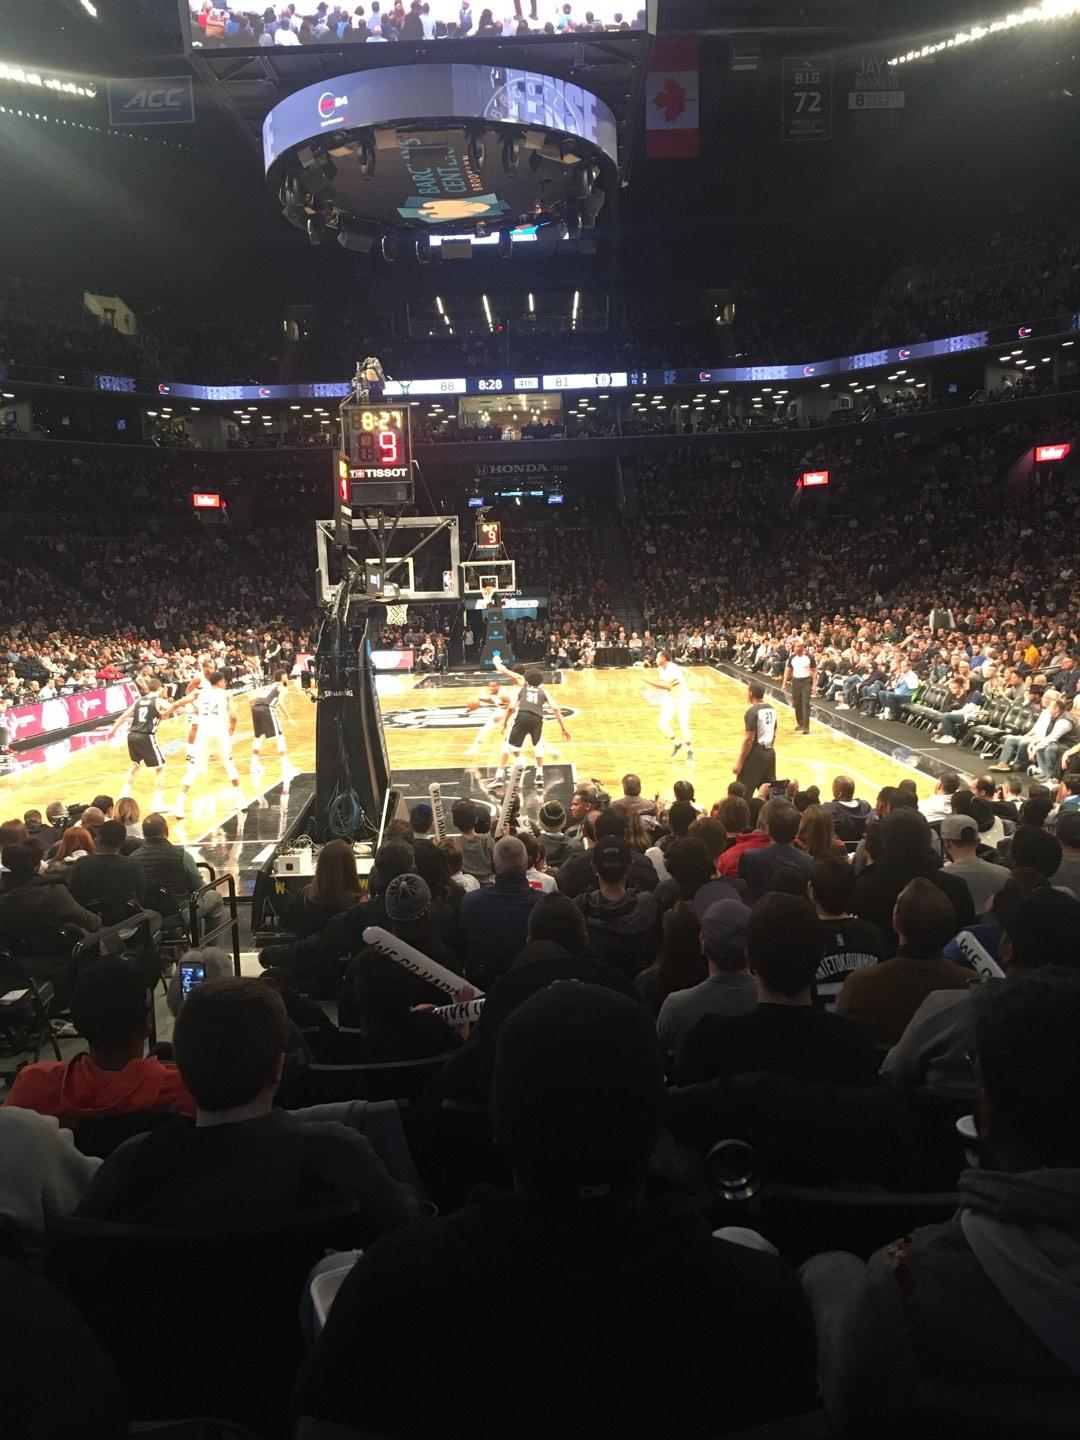 Barclays Center Secção 31 Fila 7 Lugar 10